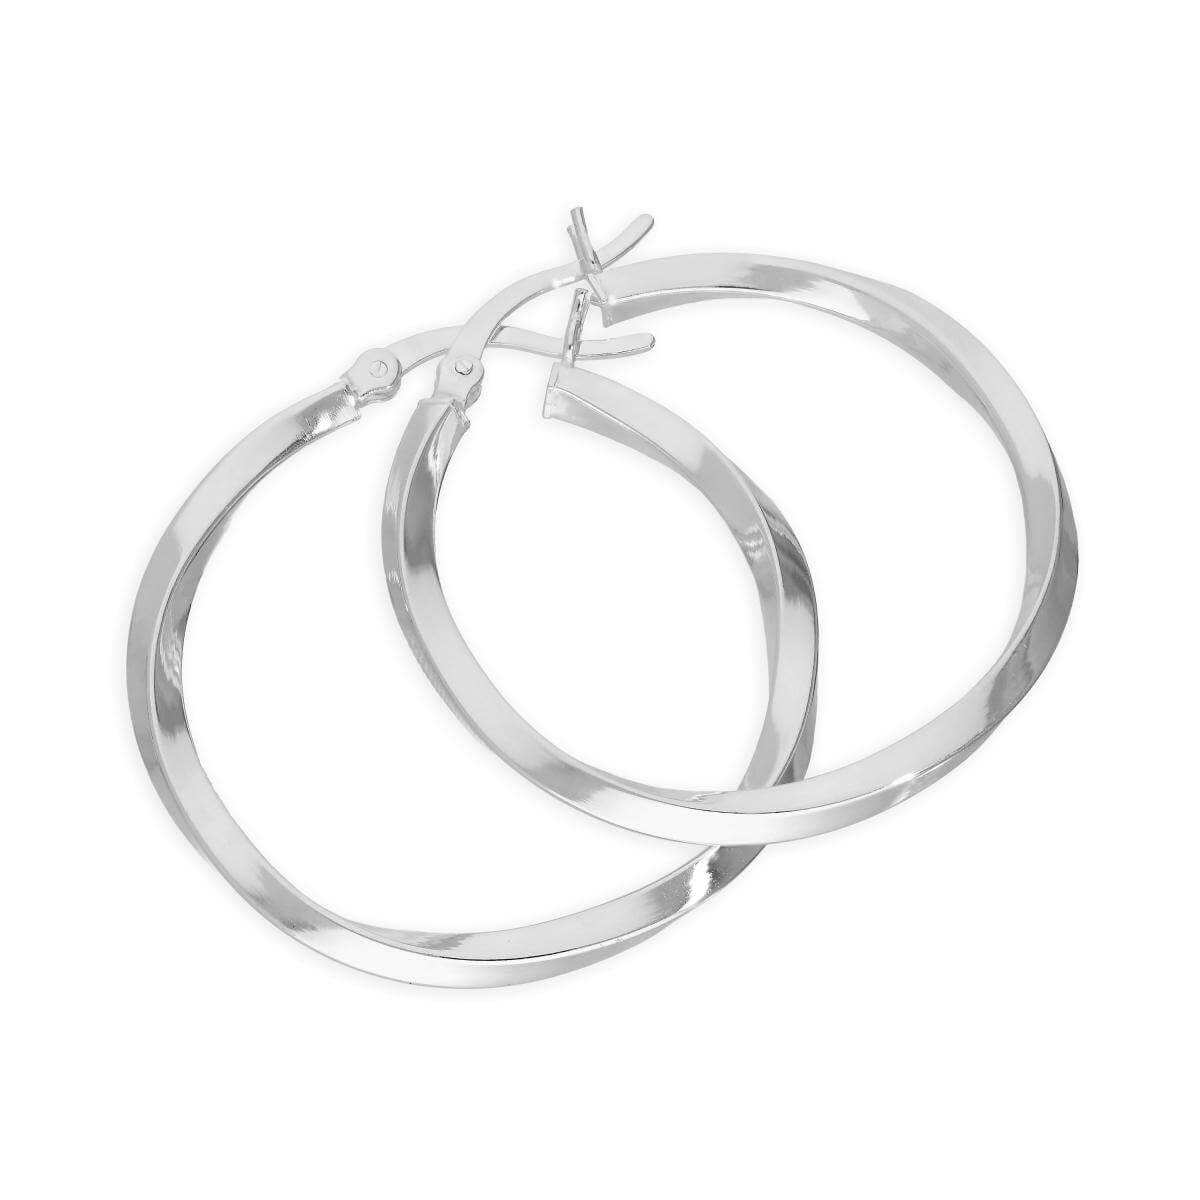 Sterling Silver Twisted 31mm Hoop Earrings